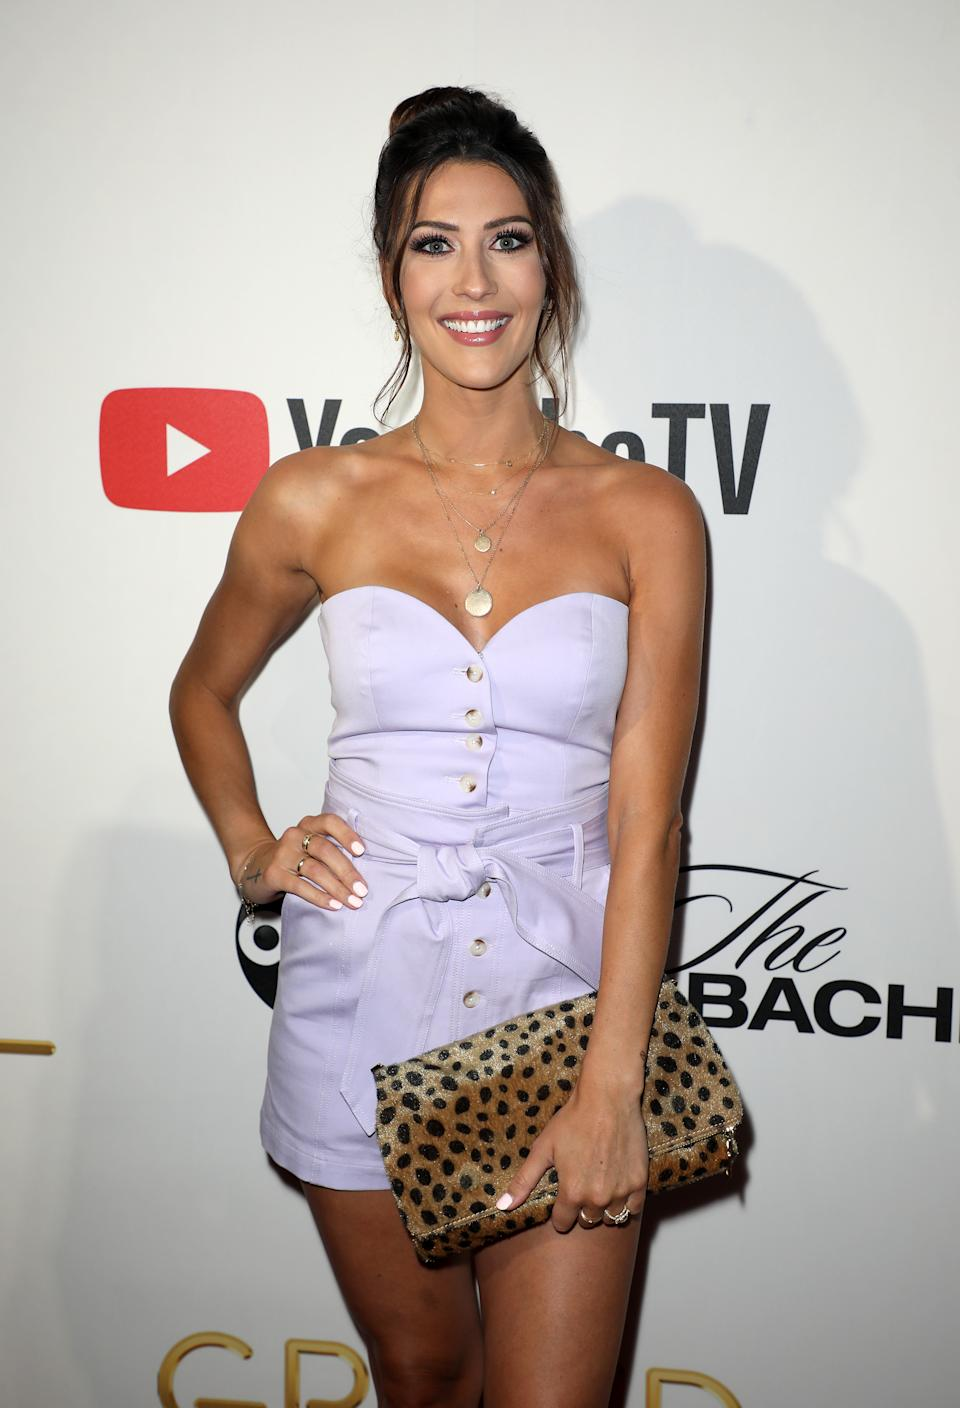 Becca Kufrin reveals that she's freezing her eggs. (Photo: Alexander Tamargo/Getty Images)